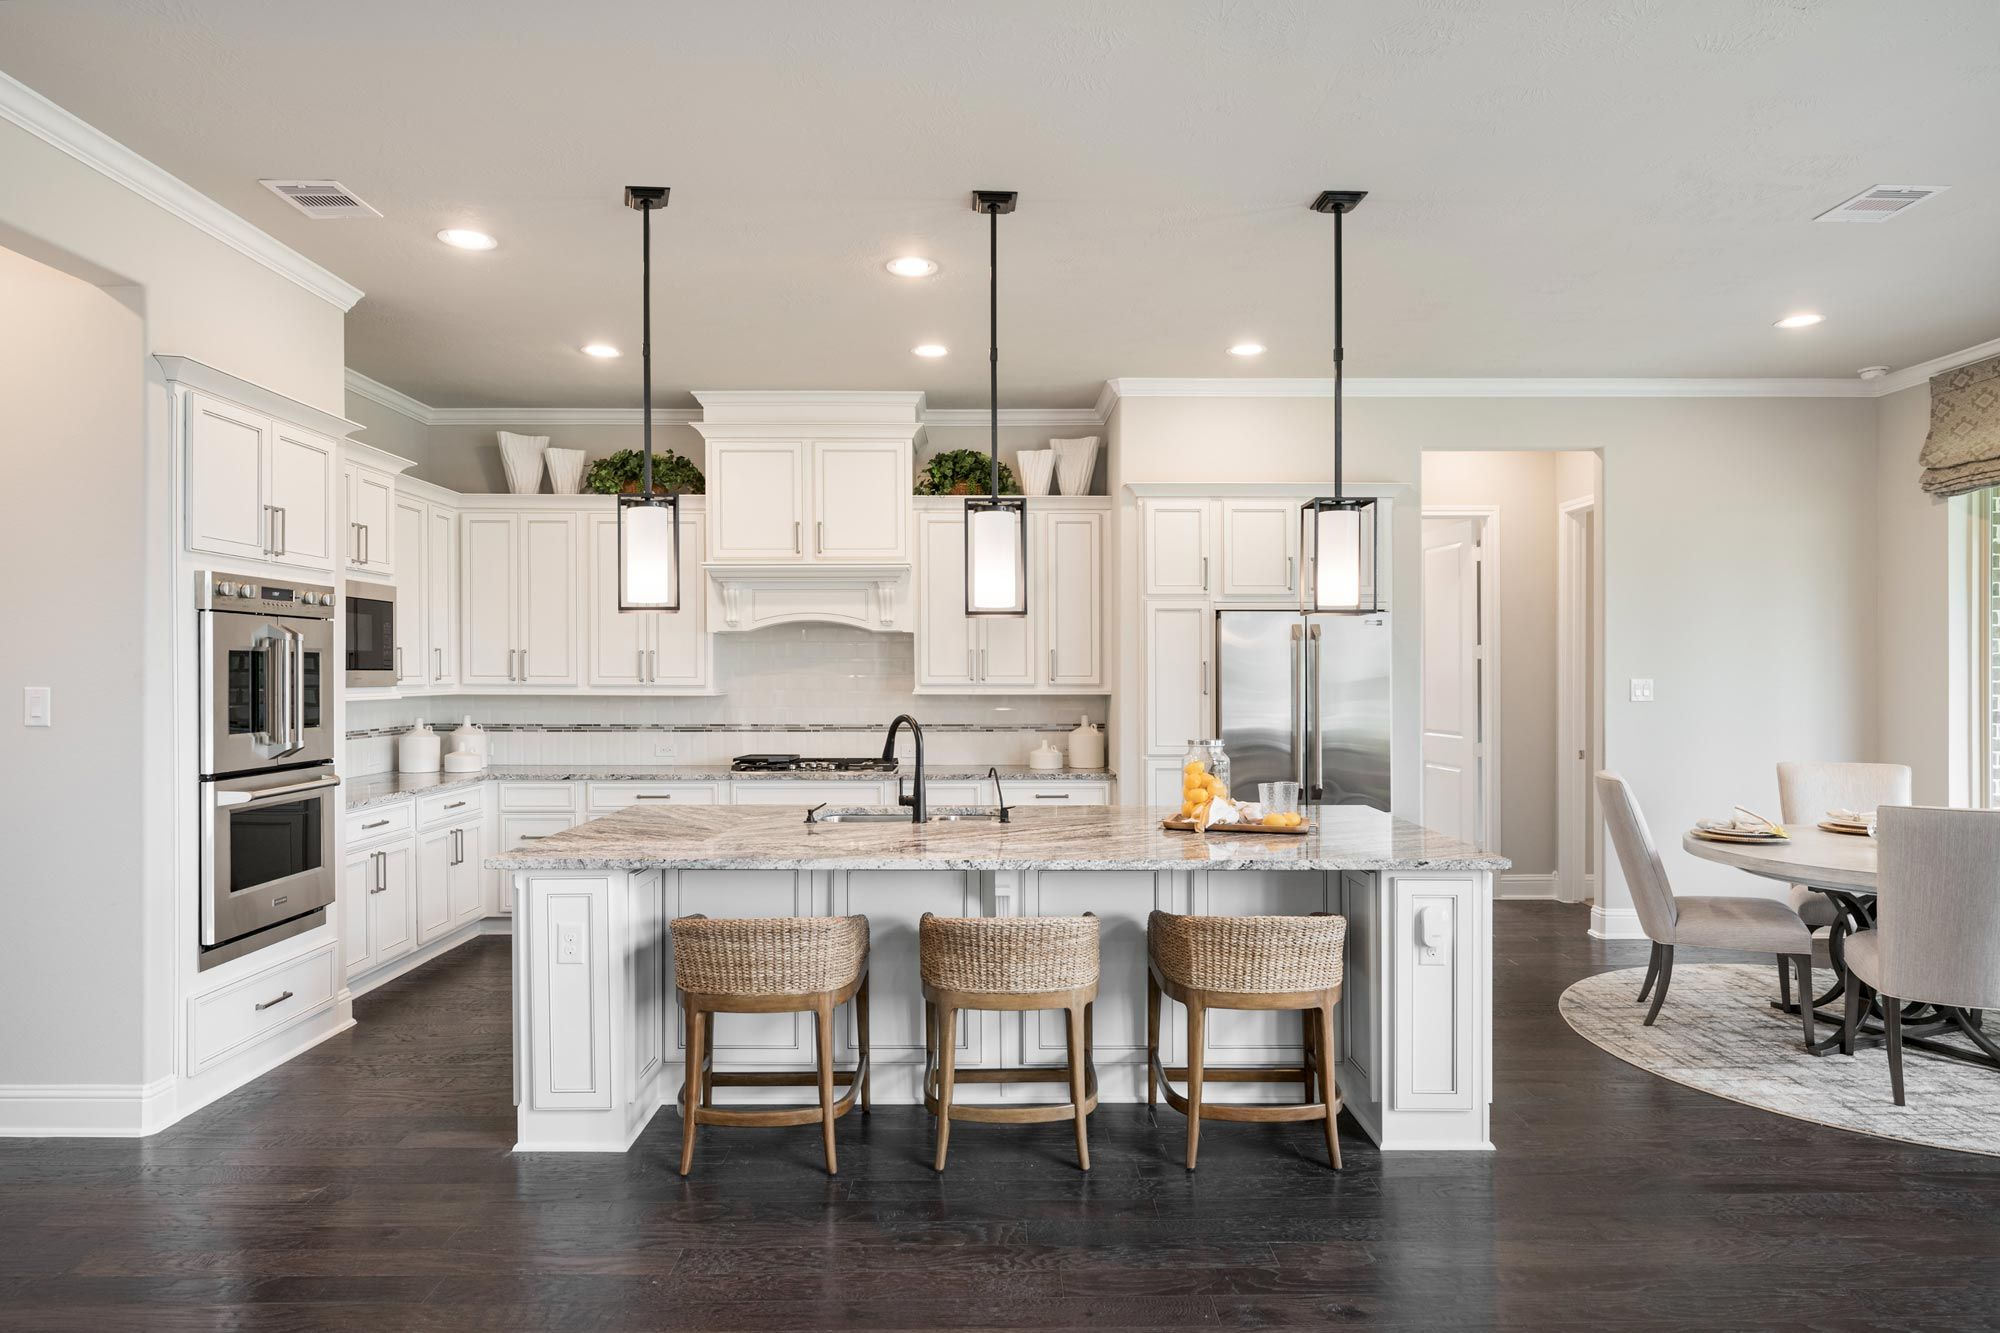 Kitchen featured in the Lucca By Trendmaker Homes in Houston, TX